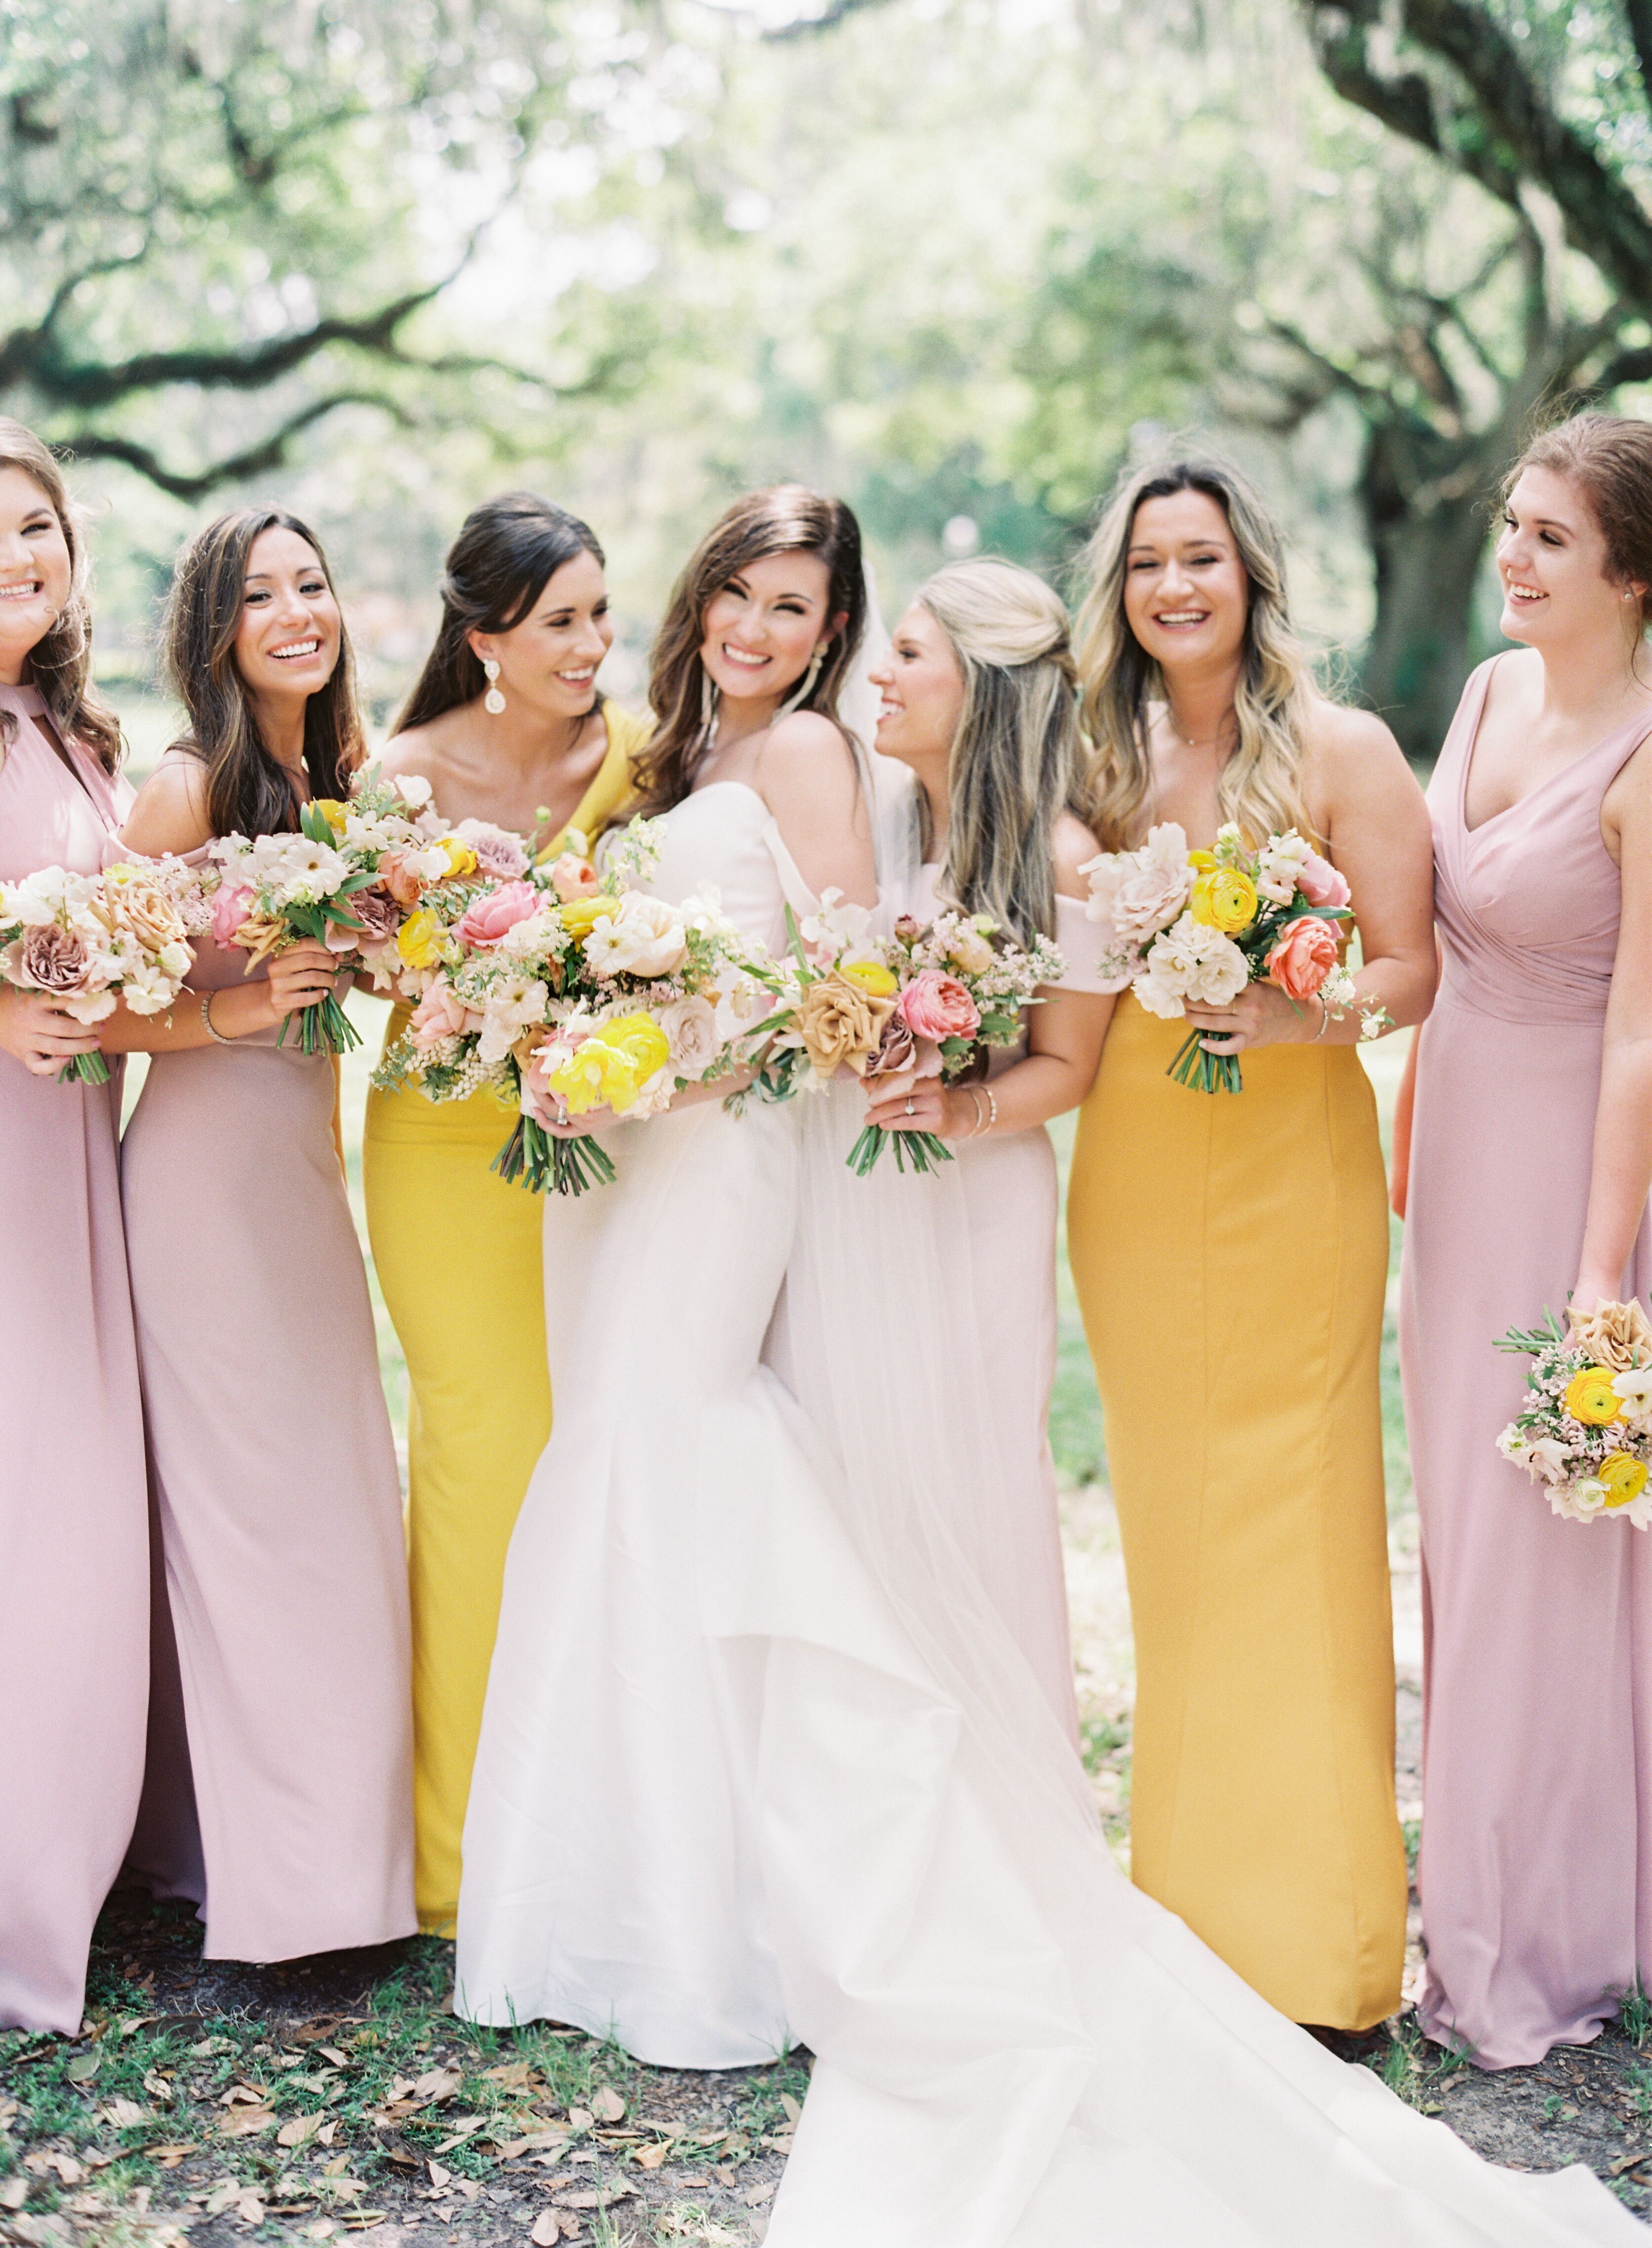 Yellow And Purple Bridesmaids Dresses And Colorful Bouquets Yellow Bridesmaid Dresses Purple Bridesmaid Dresses Purple Bridesmaids